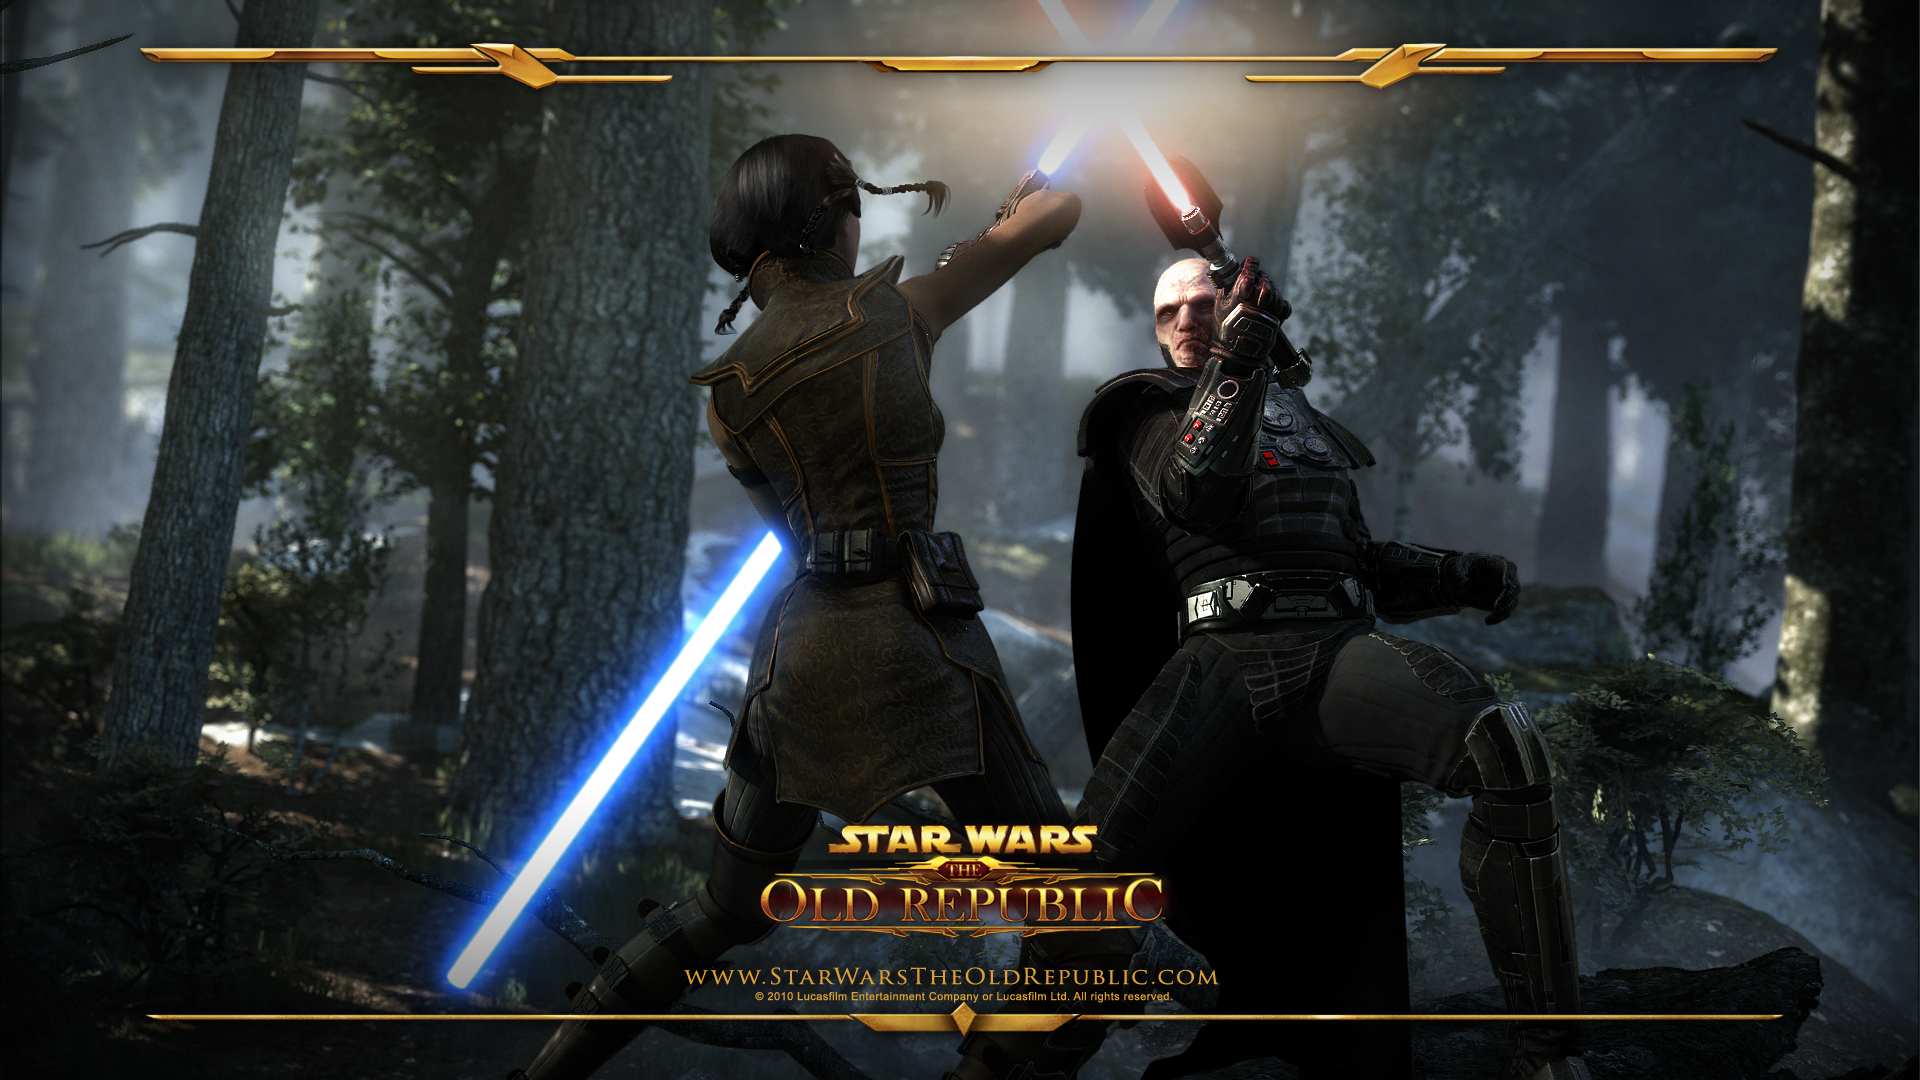 Swtor backgrounds